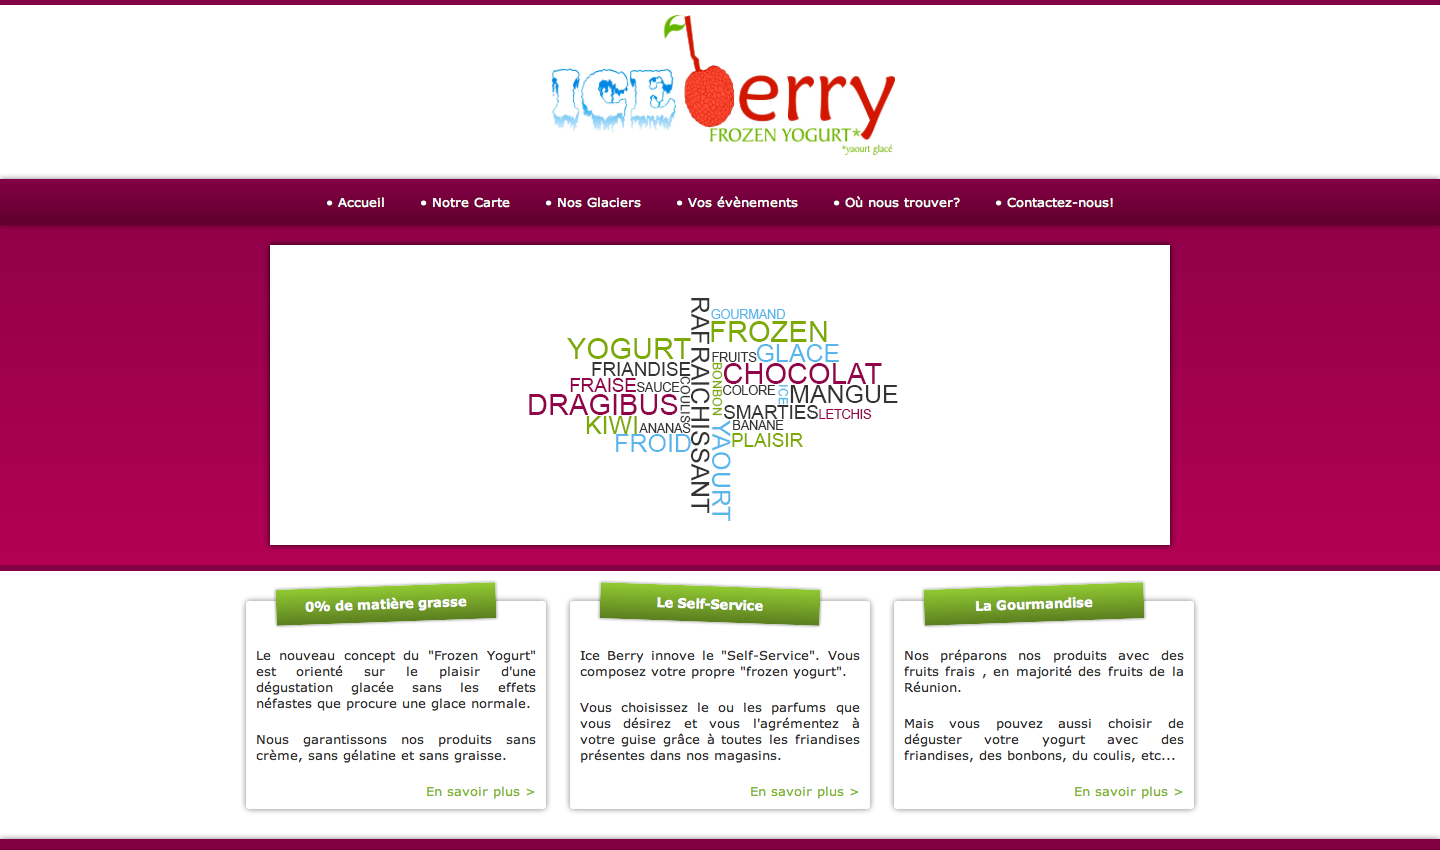 Ice berry : frozen yogurt